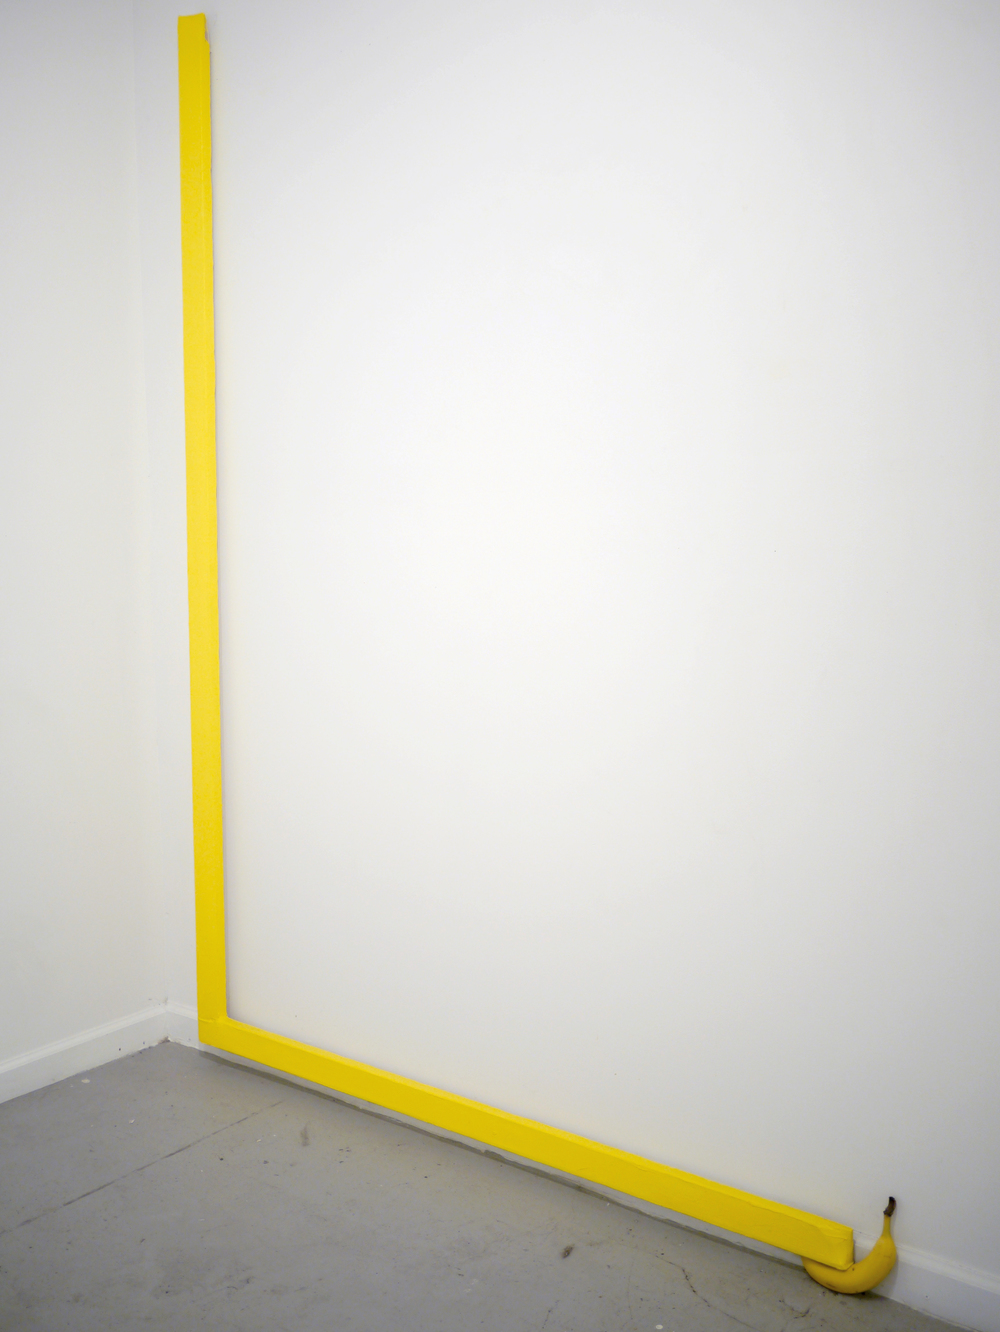 Banana in Line  60 inches x 84 inches  Oil on canvas, banana  2015